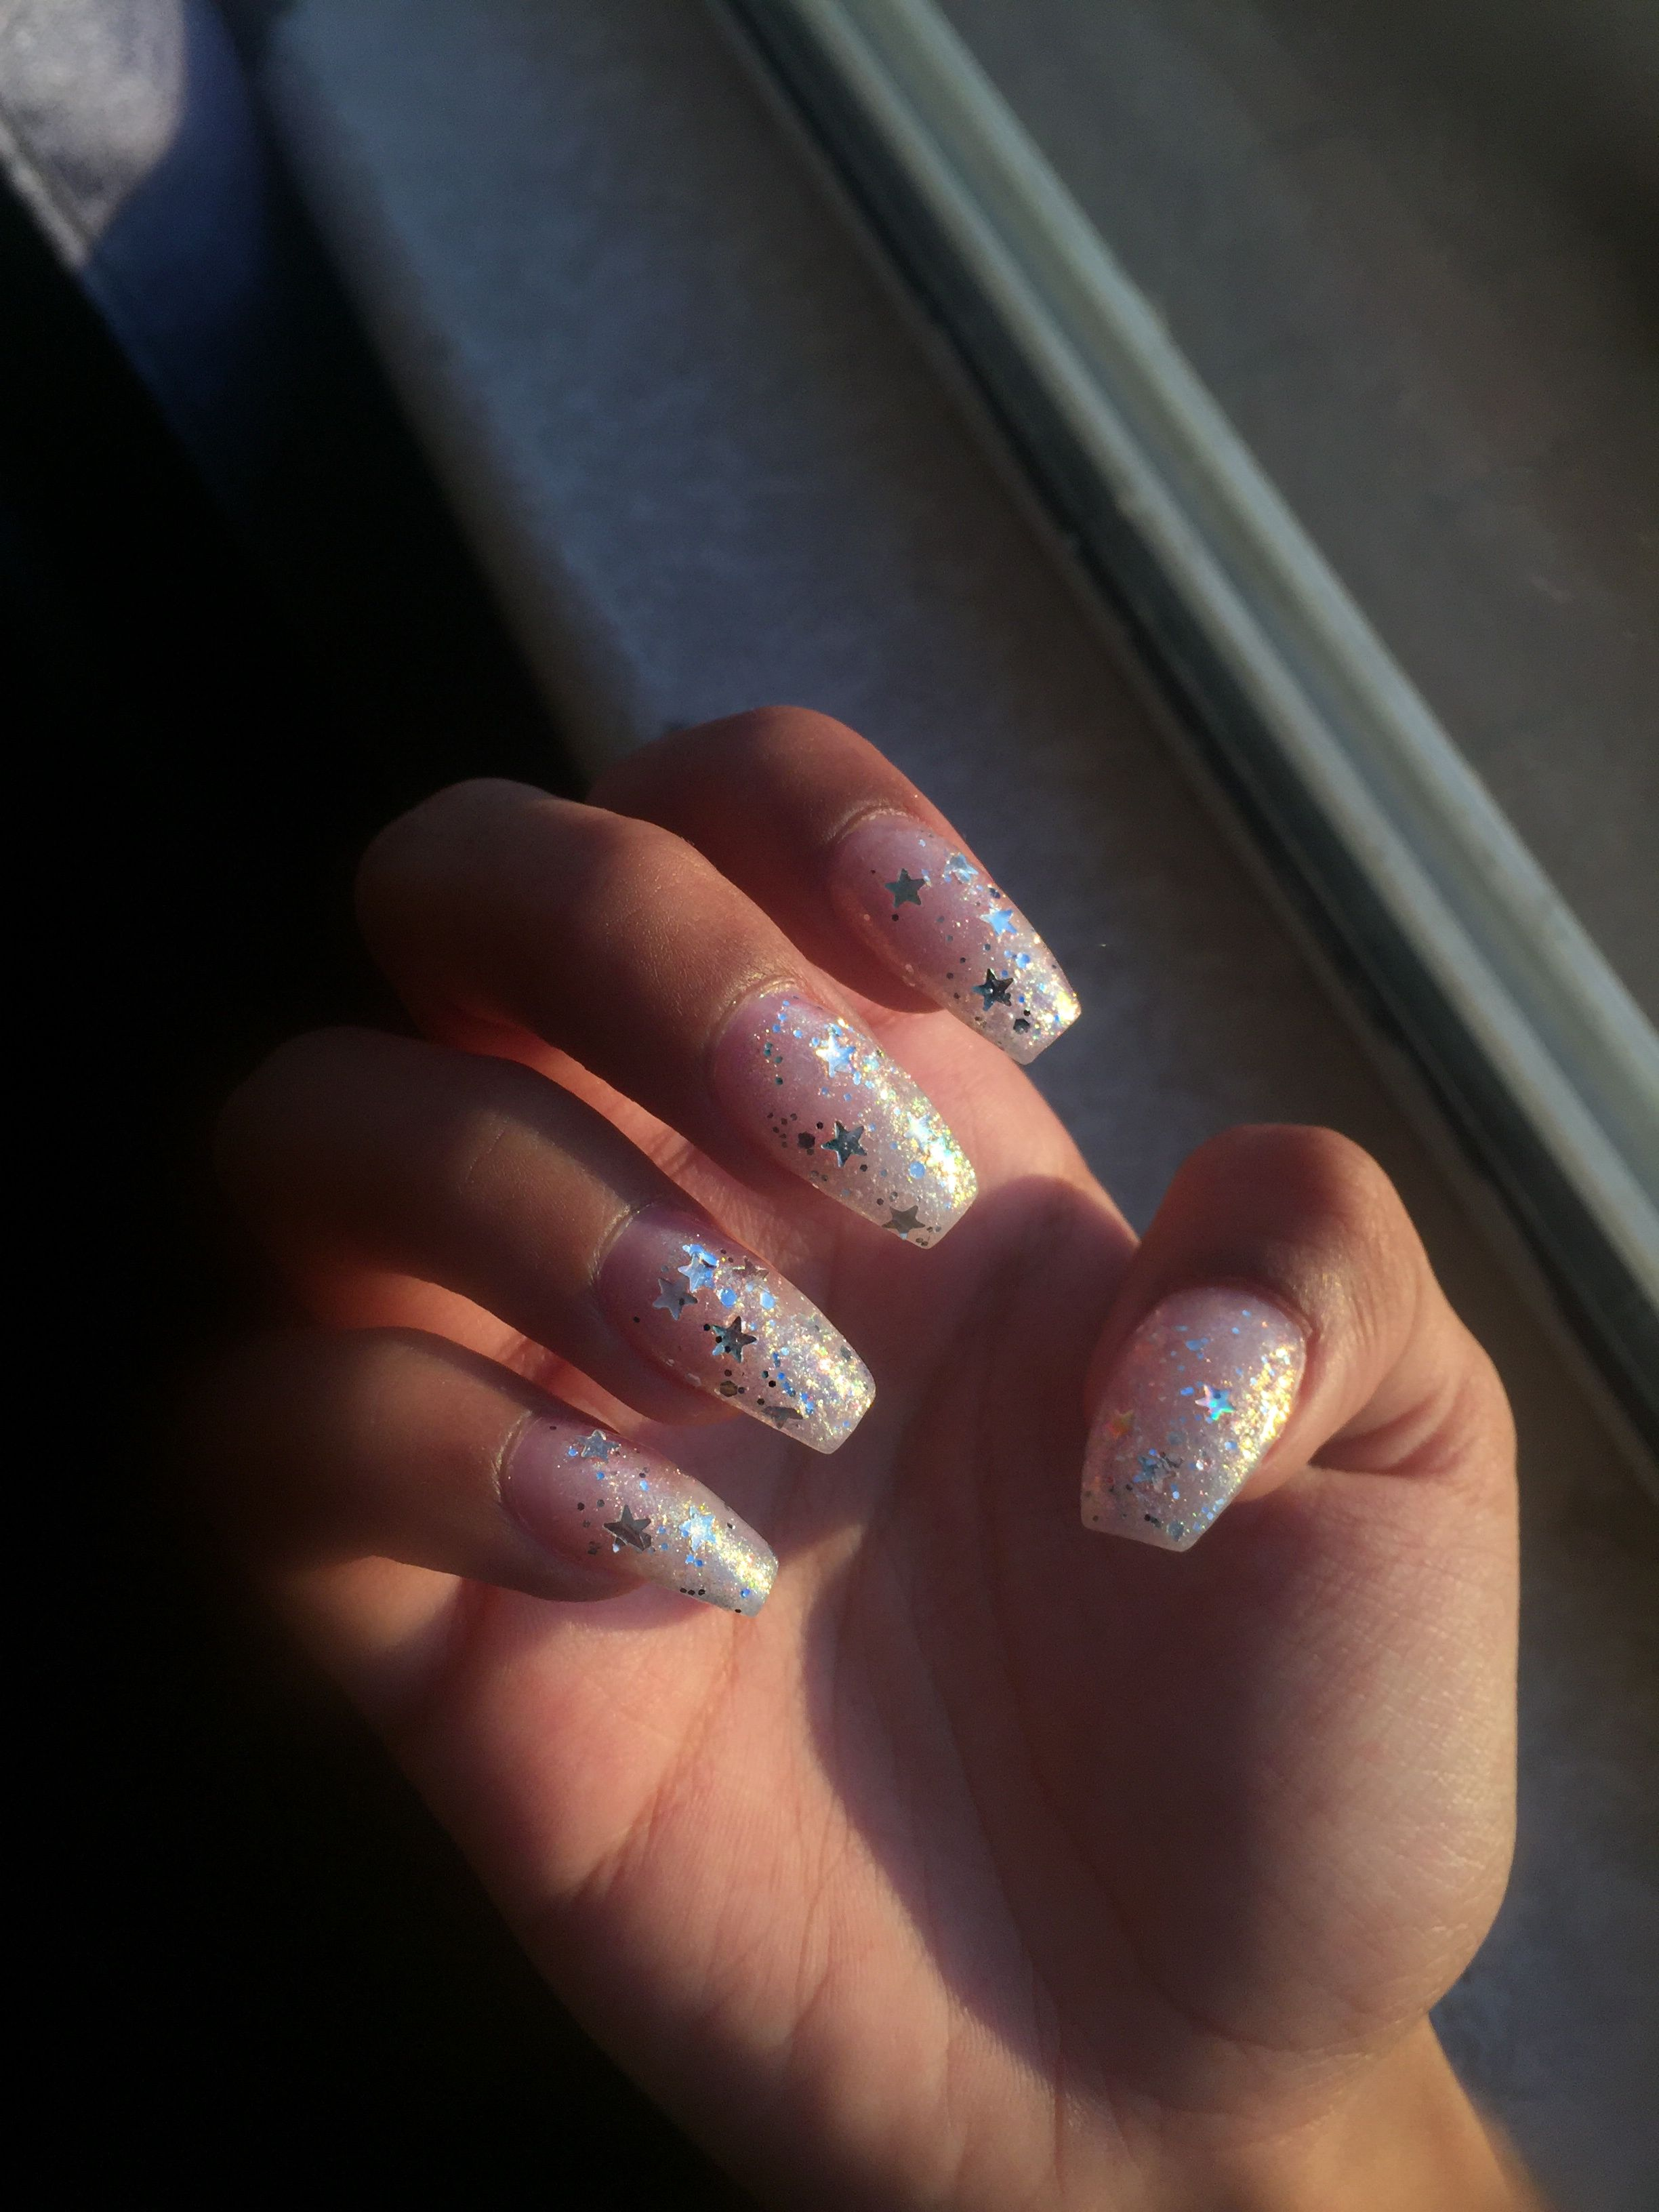 Glittery coffin nails with stars | Nails | Pinterest | Coffin nails